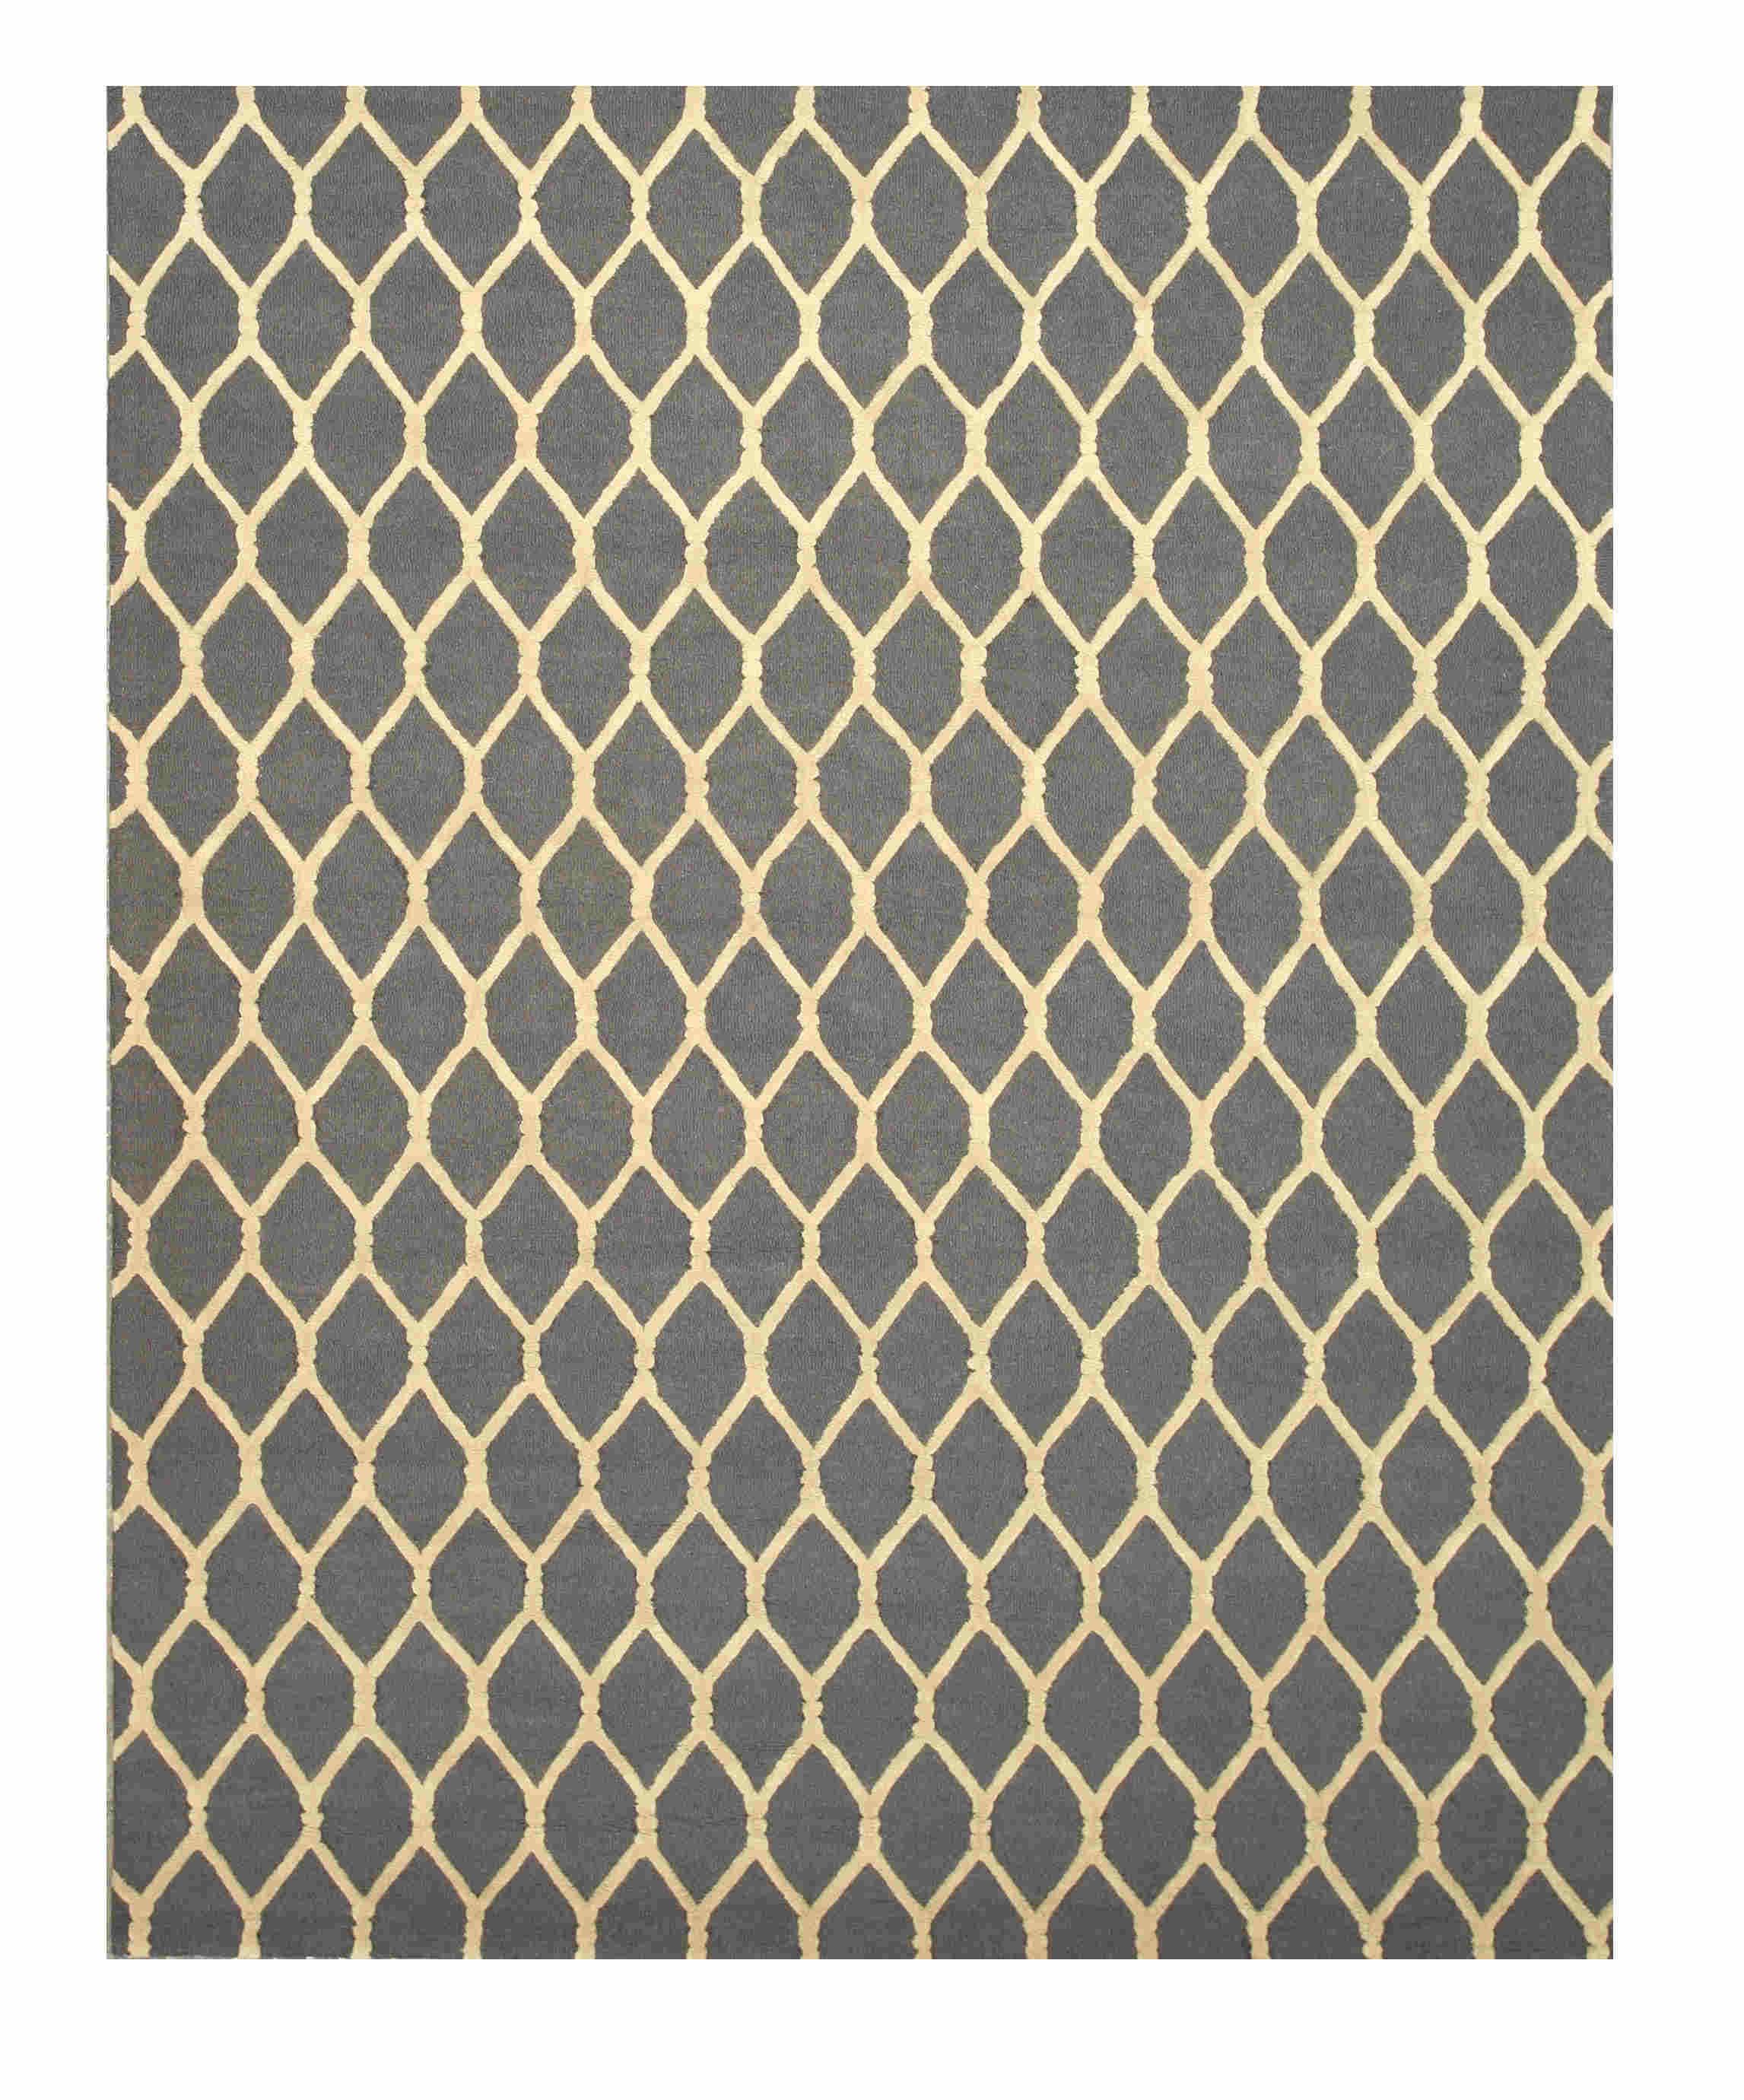 Eorc Vc1001gy Charcoal Hand Tufted Wool Chain-link Rug